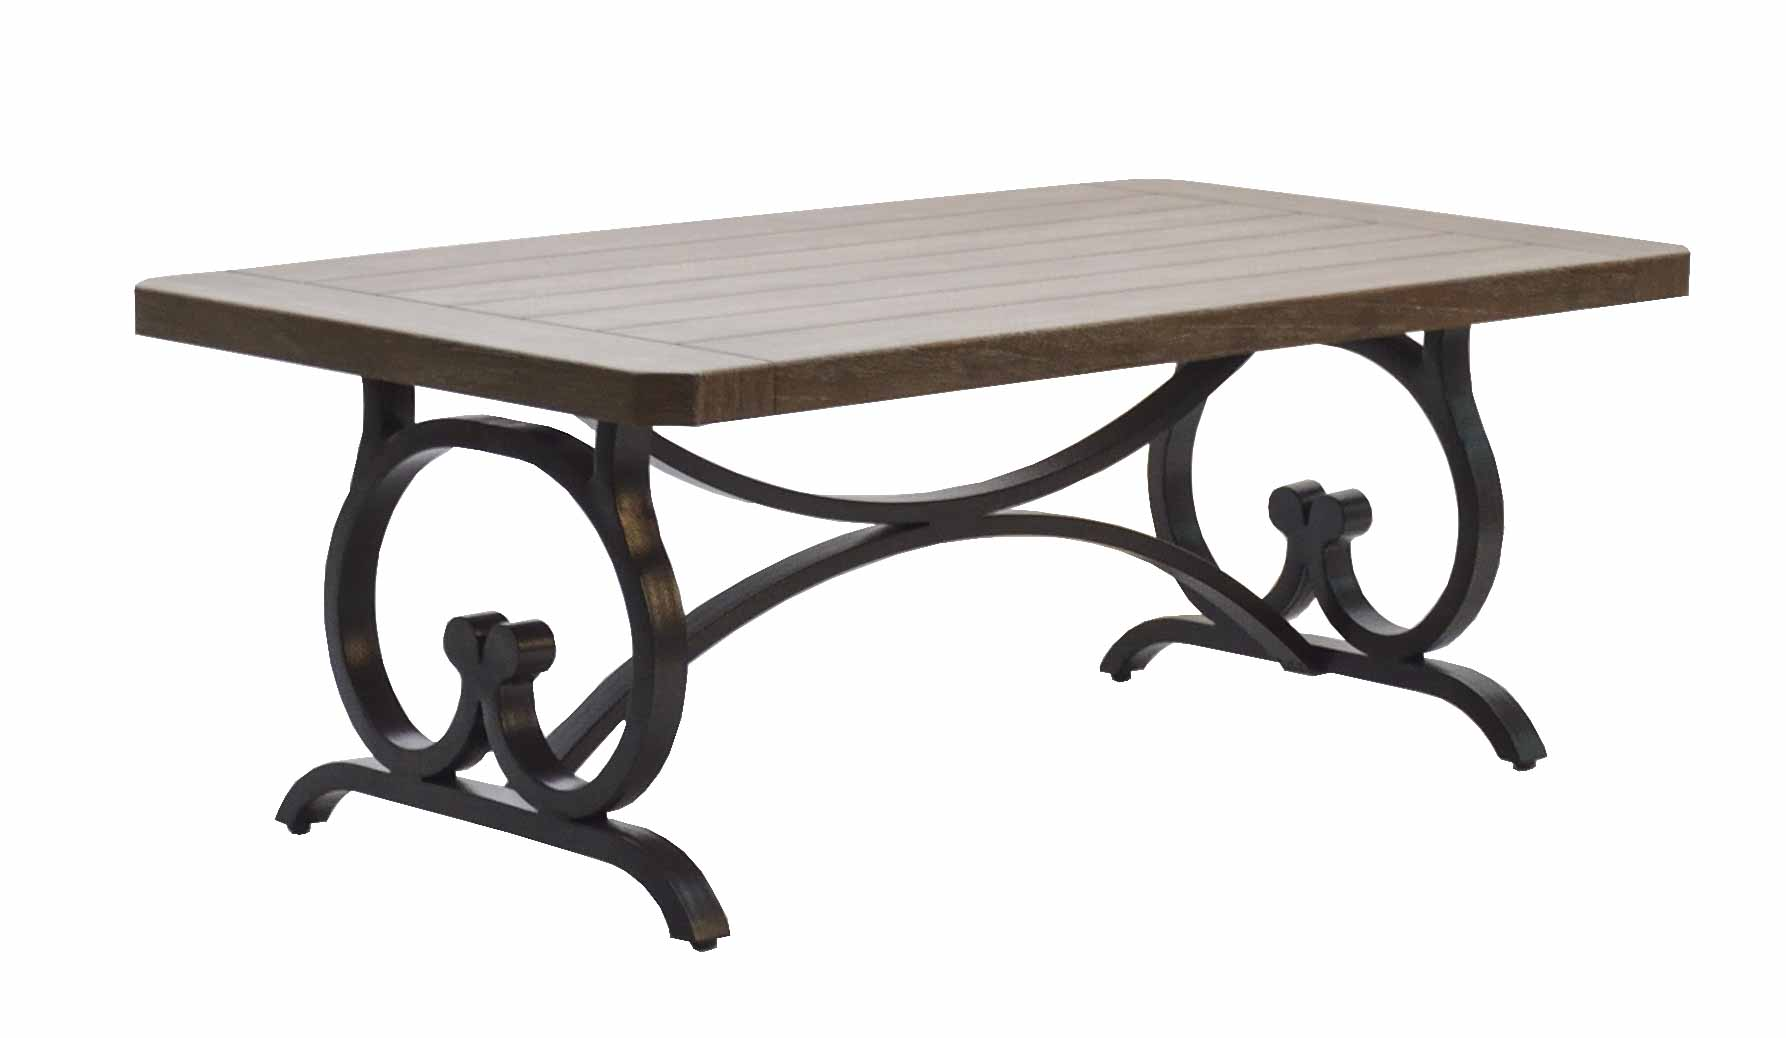 """601535 Key Largo New Rectangular Coffee Table  (Base only) * See Book *  (Top : NHPT-2648 New Hampton 26"""" x 48"""" Rect. Coffe Table Top)  26 x 48 x 18.5"""